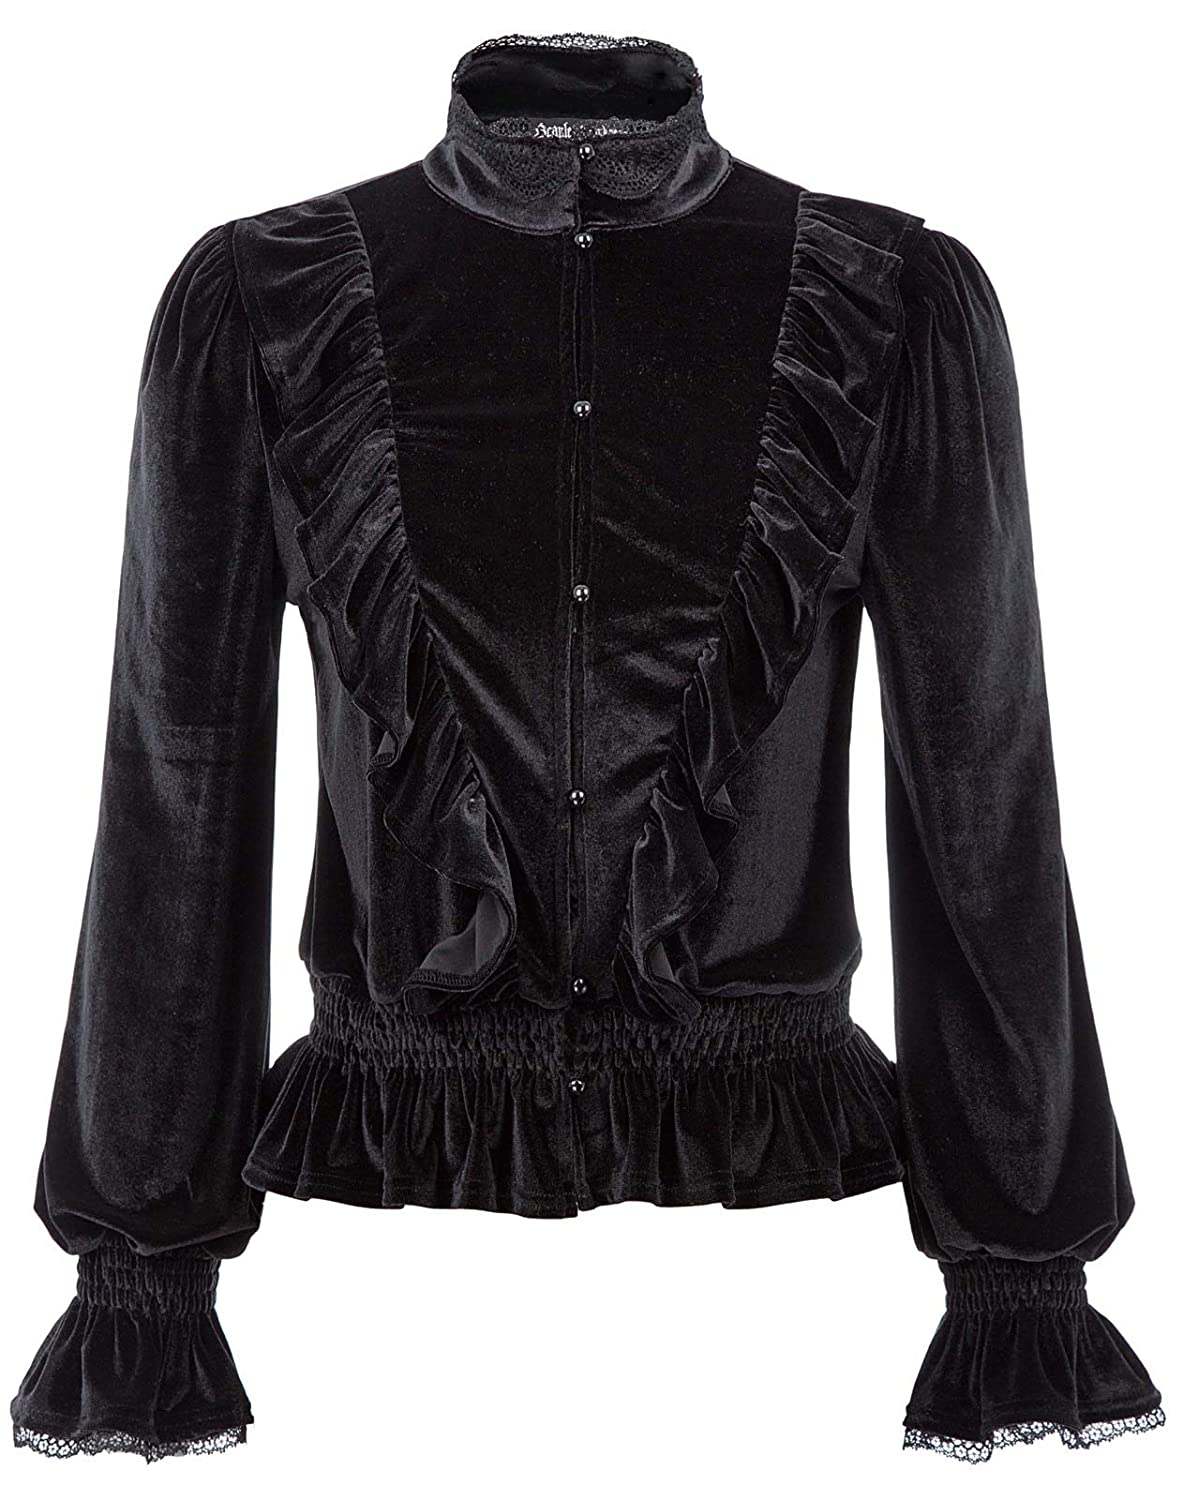 Victorian Blouses, Tops, Shirts, Sweaters SCARLET DARKNESS Womens Victorian Gothic Jacket Steampunk Stand Collar Coat $33.99 AT vintagedancer.com